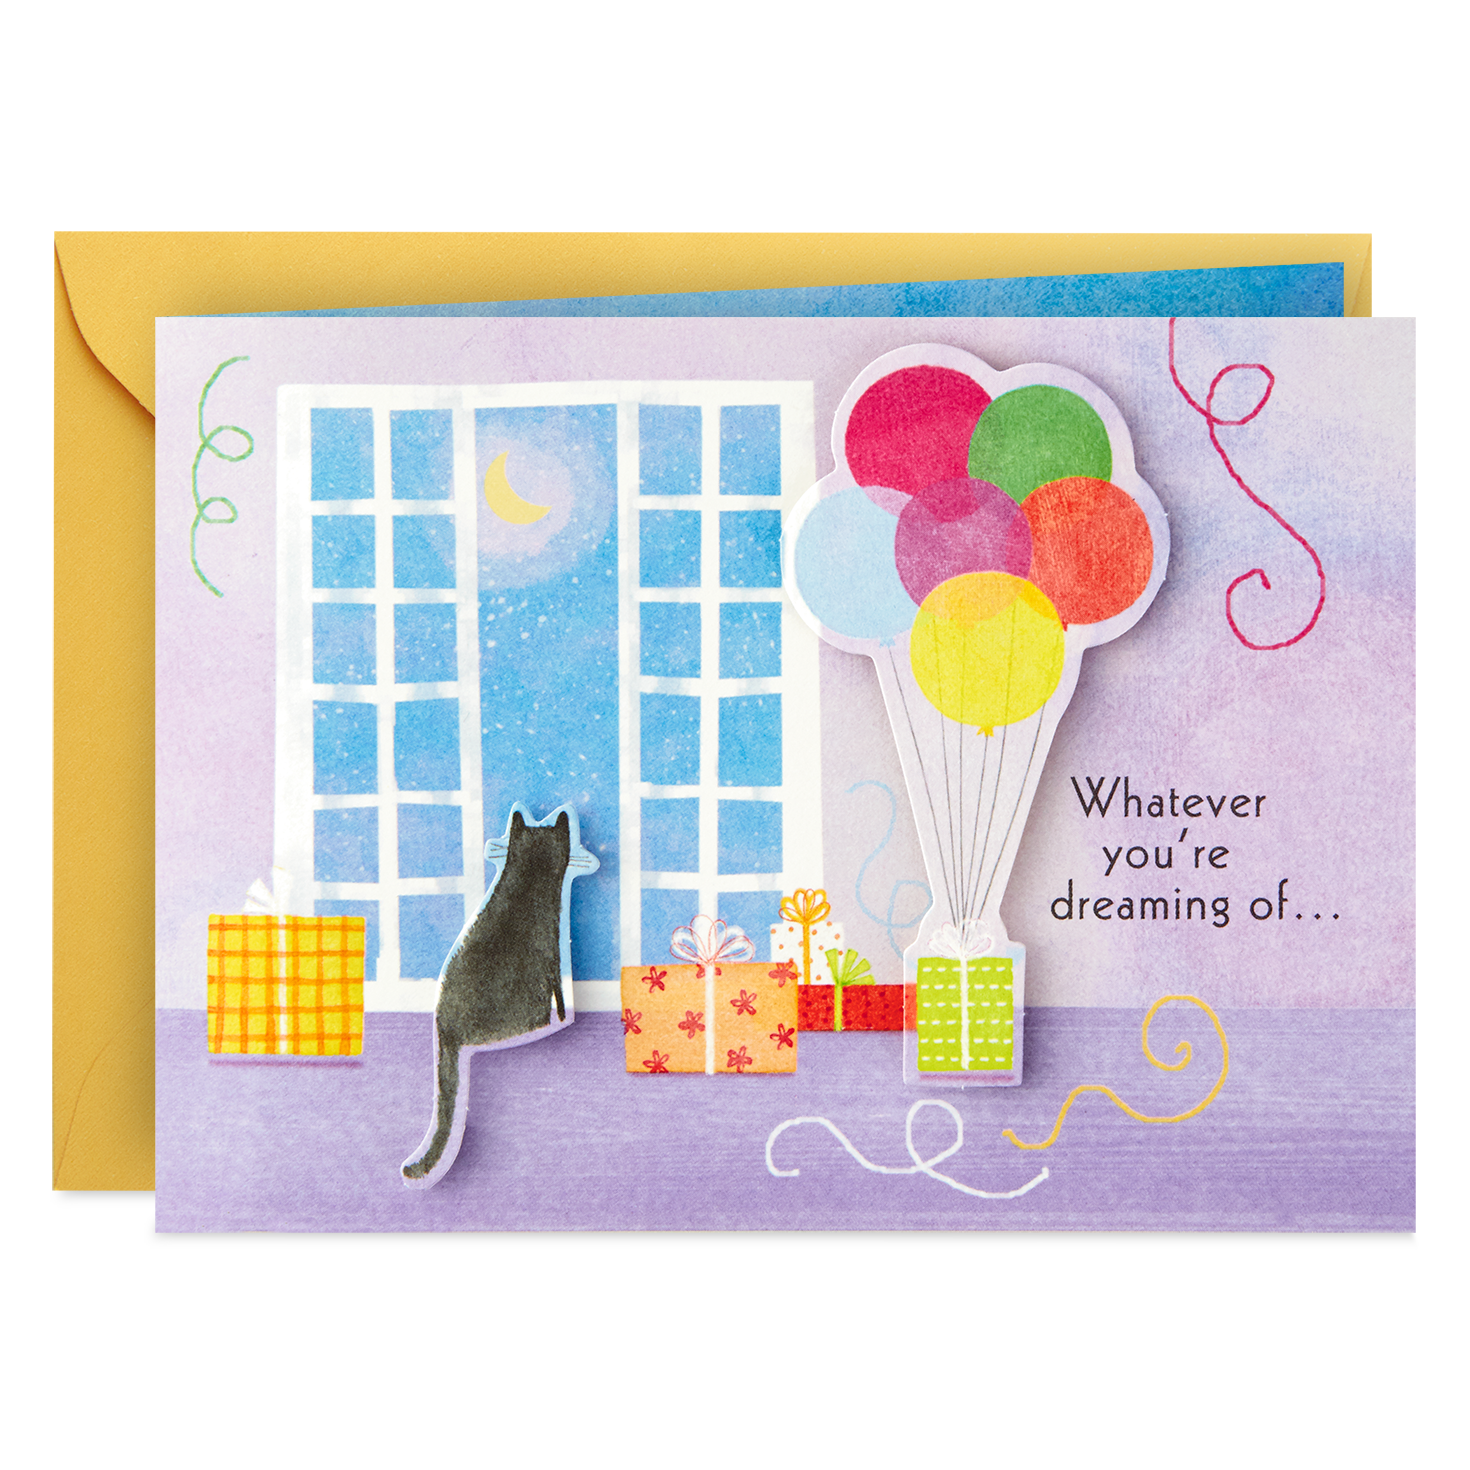 Wishes For You Cat And Balloons Mini Pop Up Birthday Card Greeting Png 1024x1024 Maxine Get